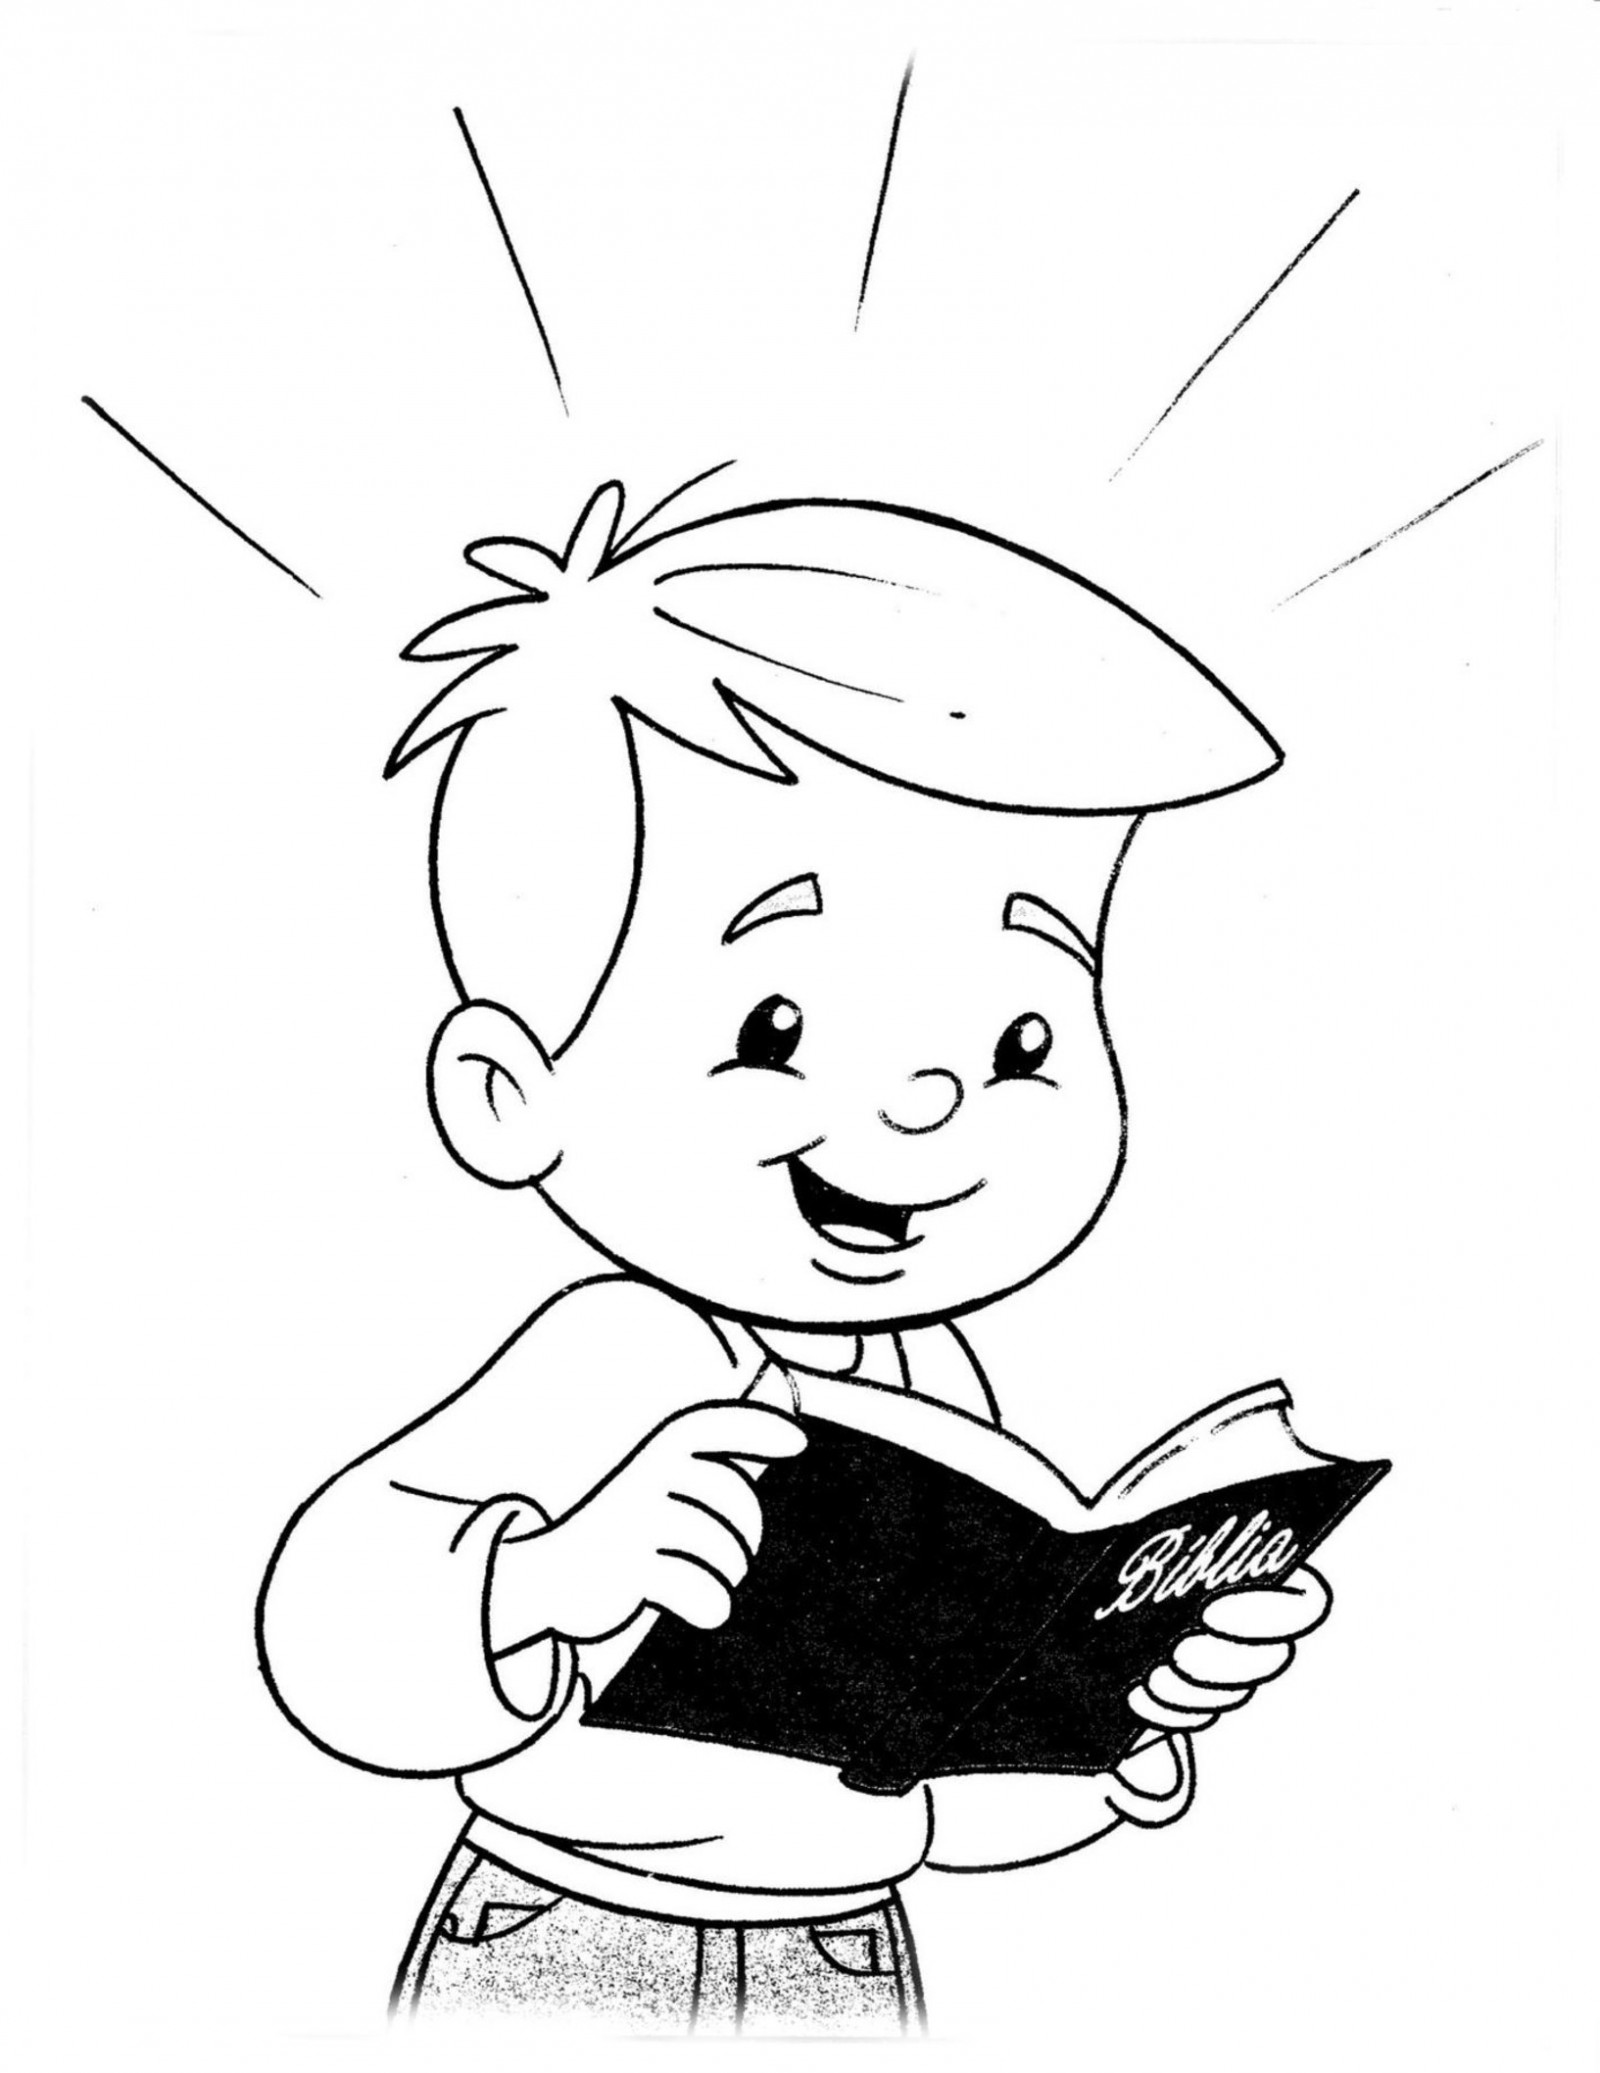 Preschool Coloring Pages (15)